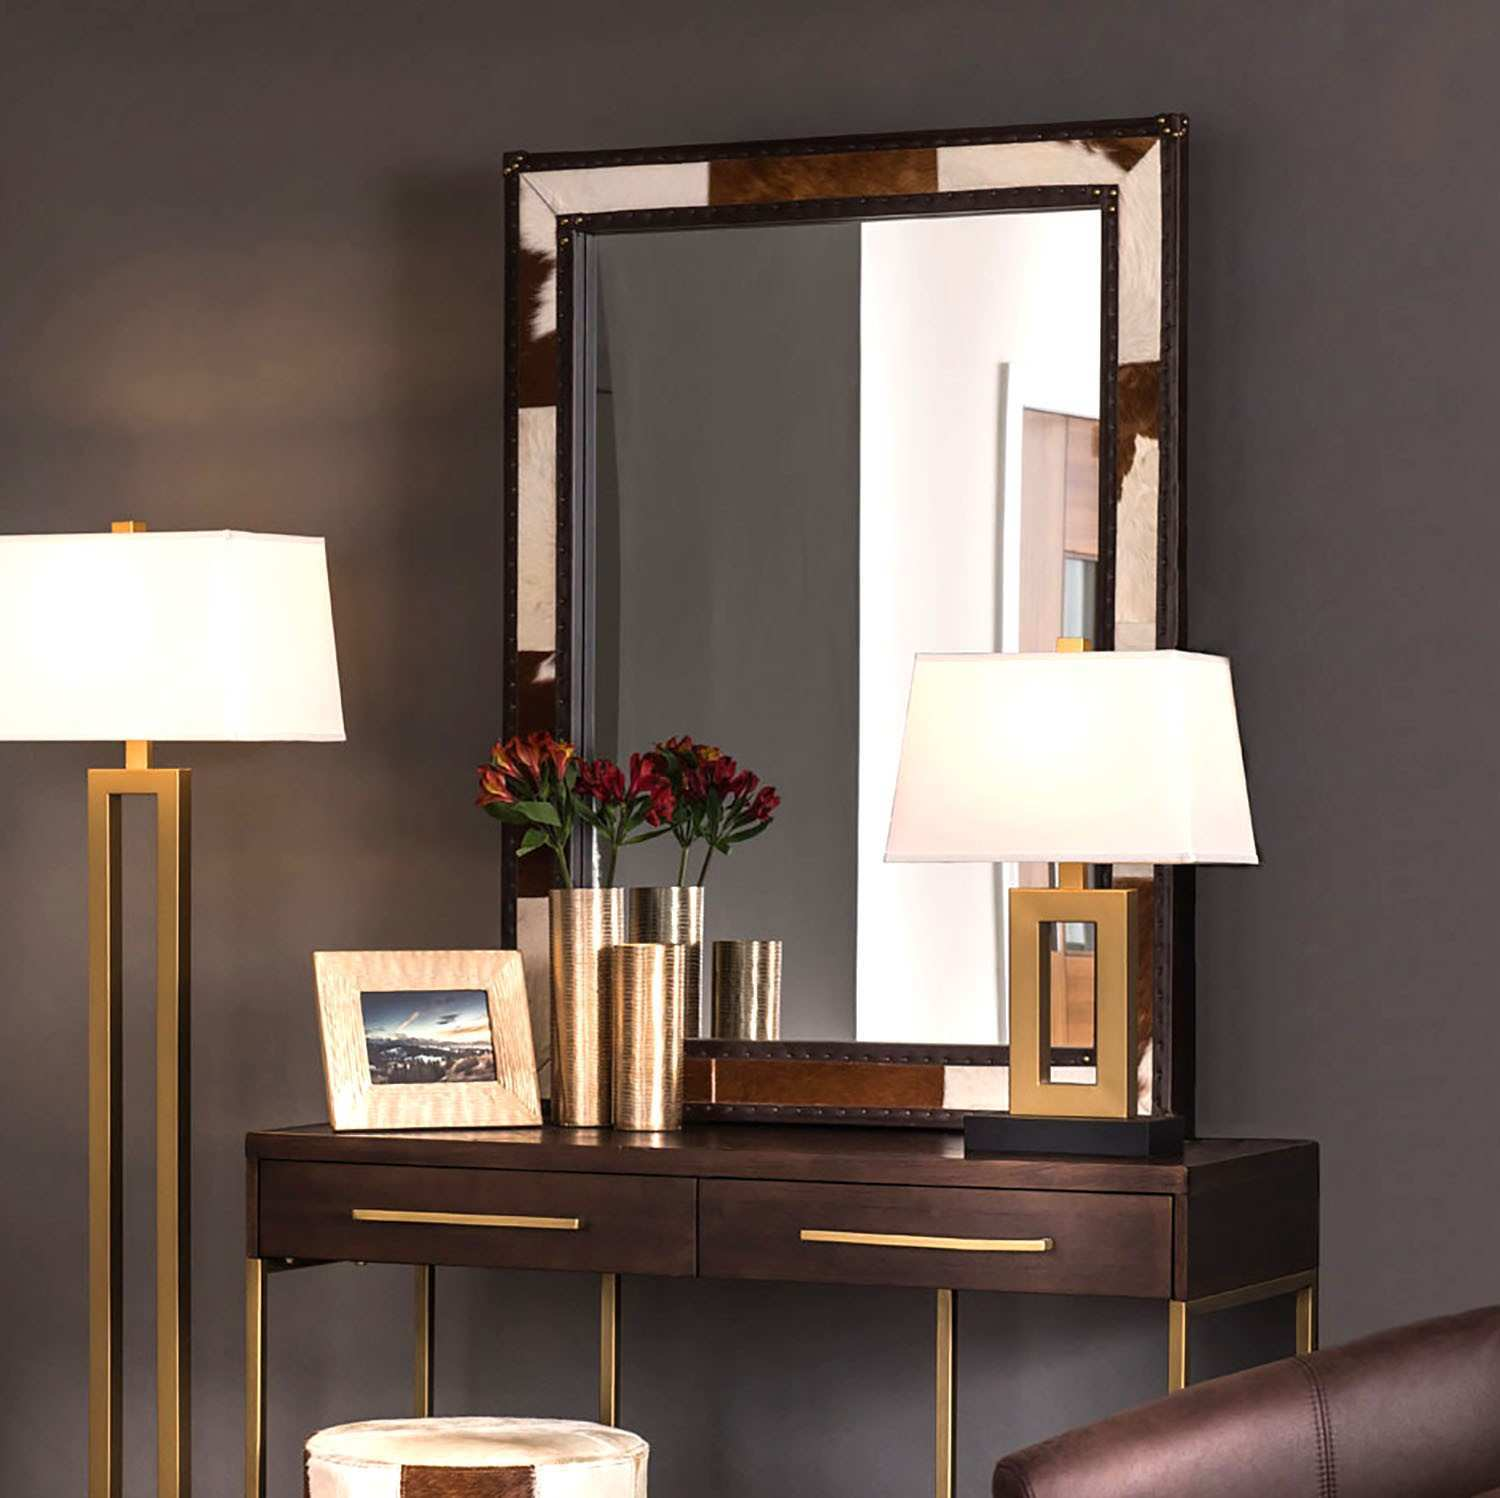 Fifty Five South Kensington Townhouse 75x110cm Wall Mirror in Black